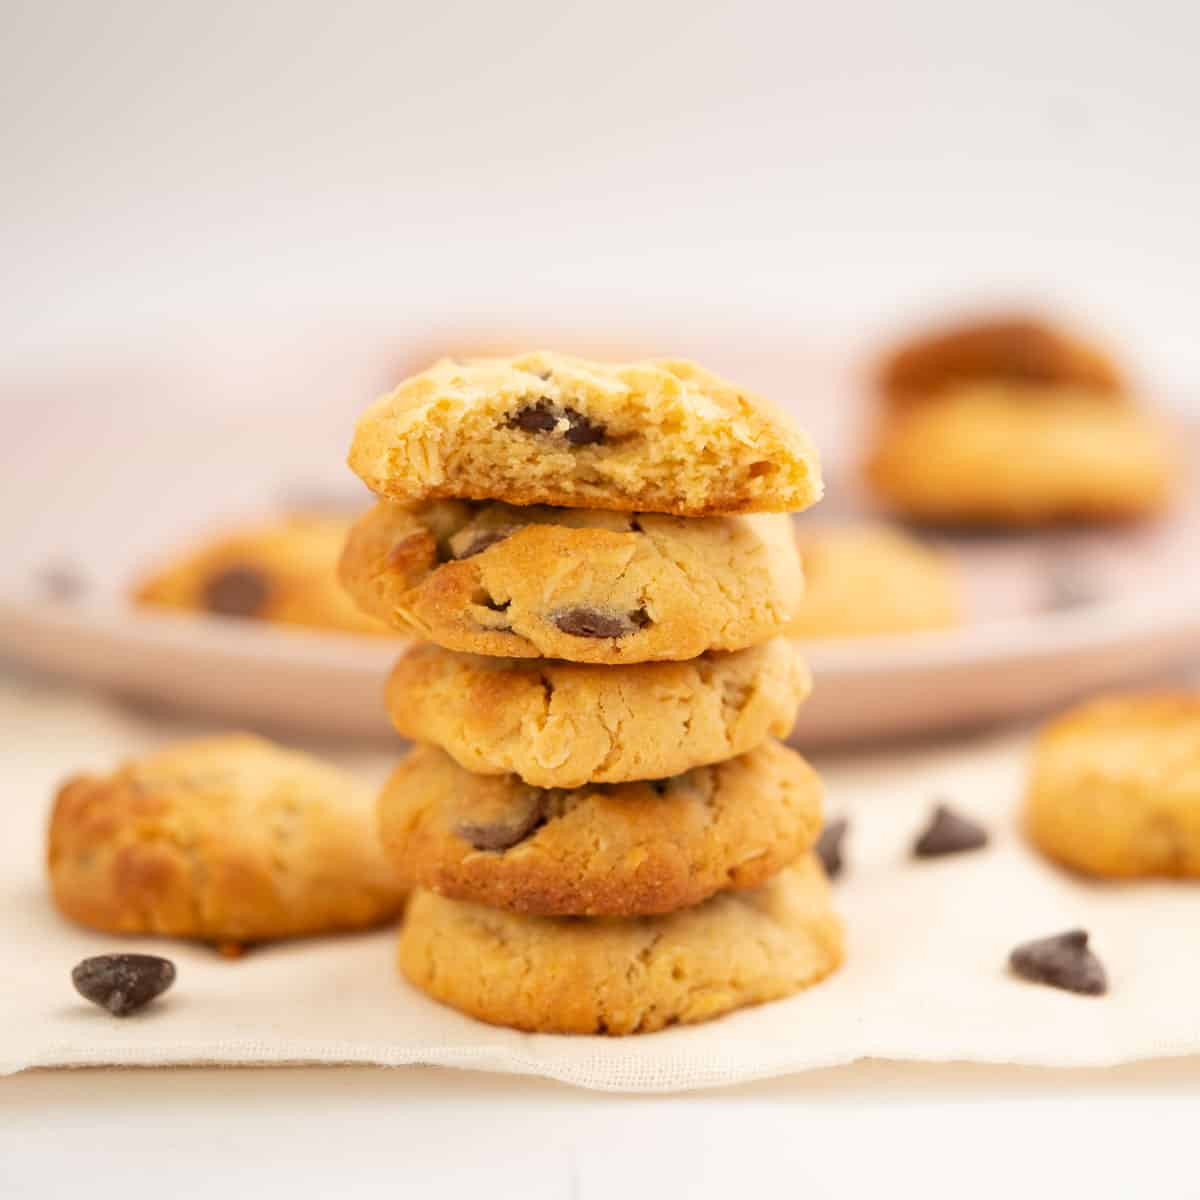 A stack of 5 condensed milk cookies in front of a plat of more cookies.